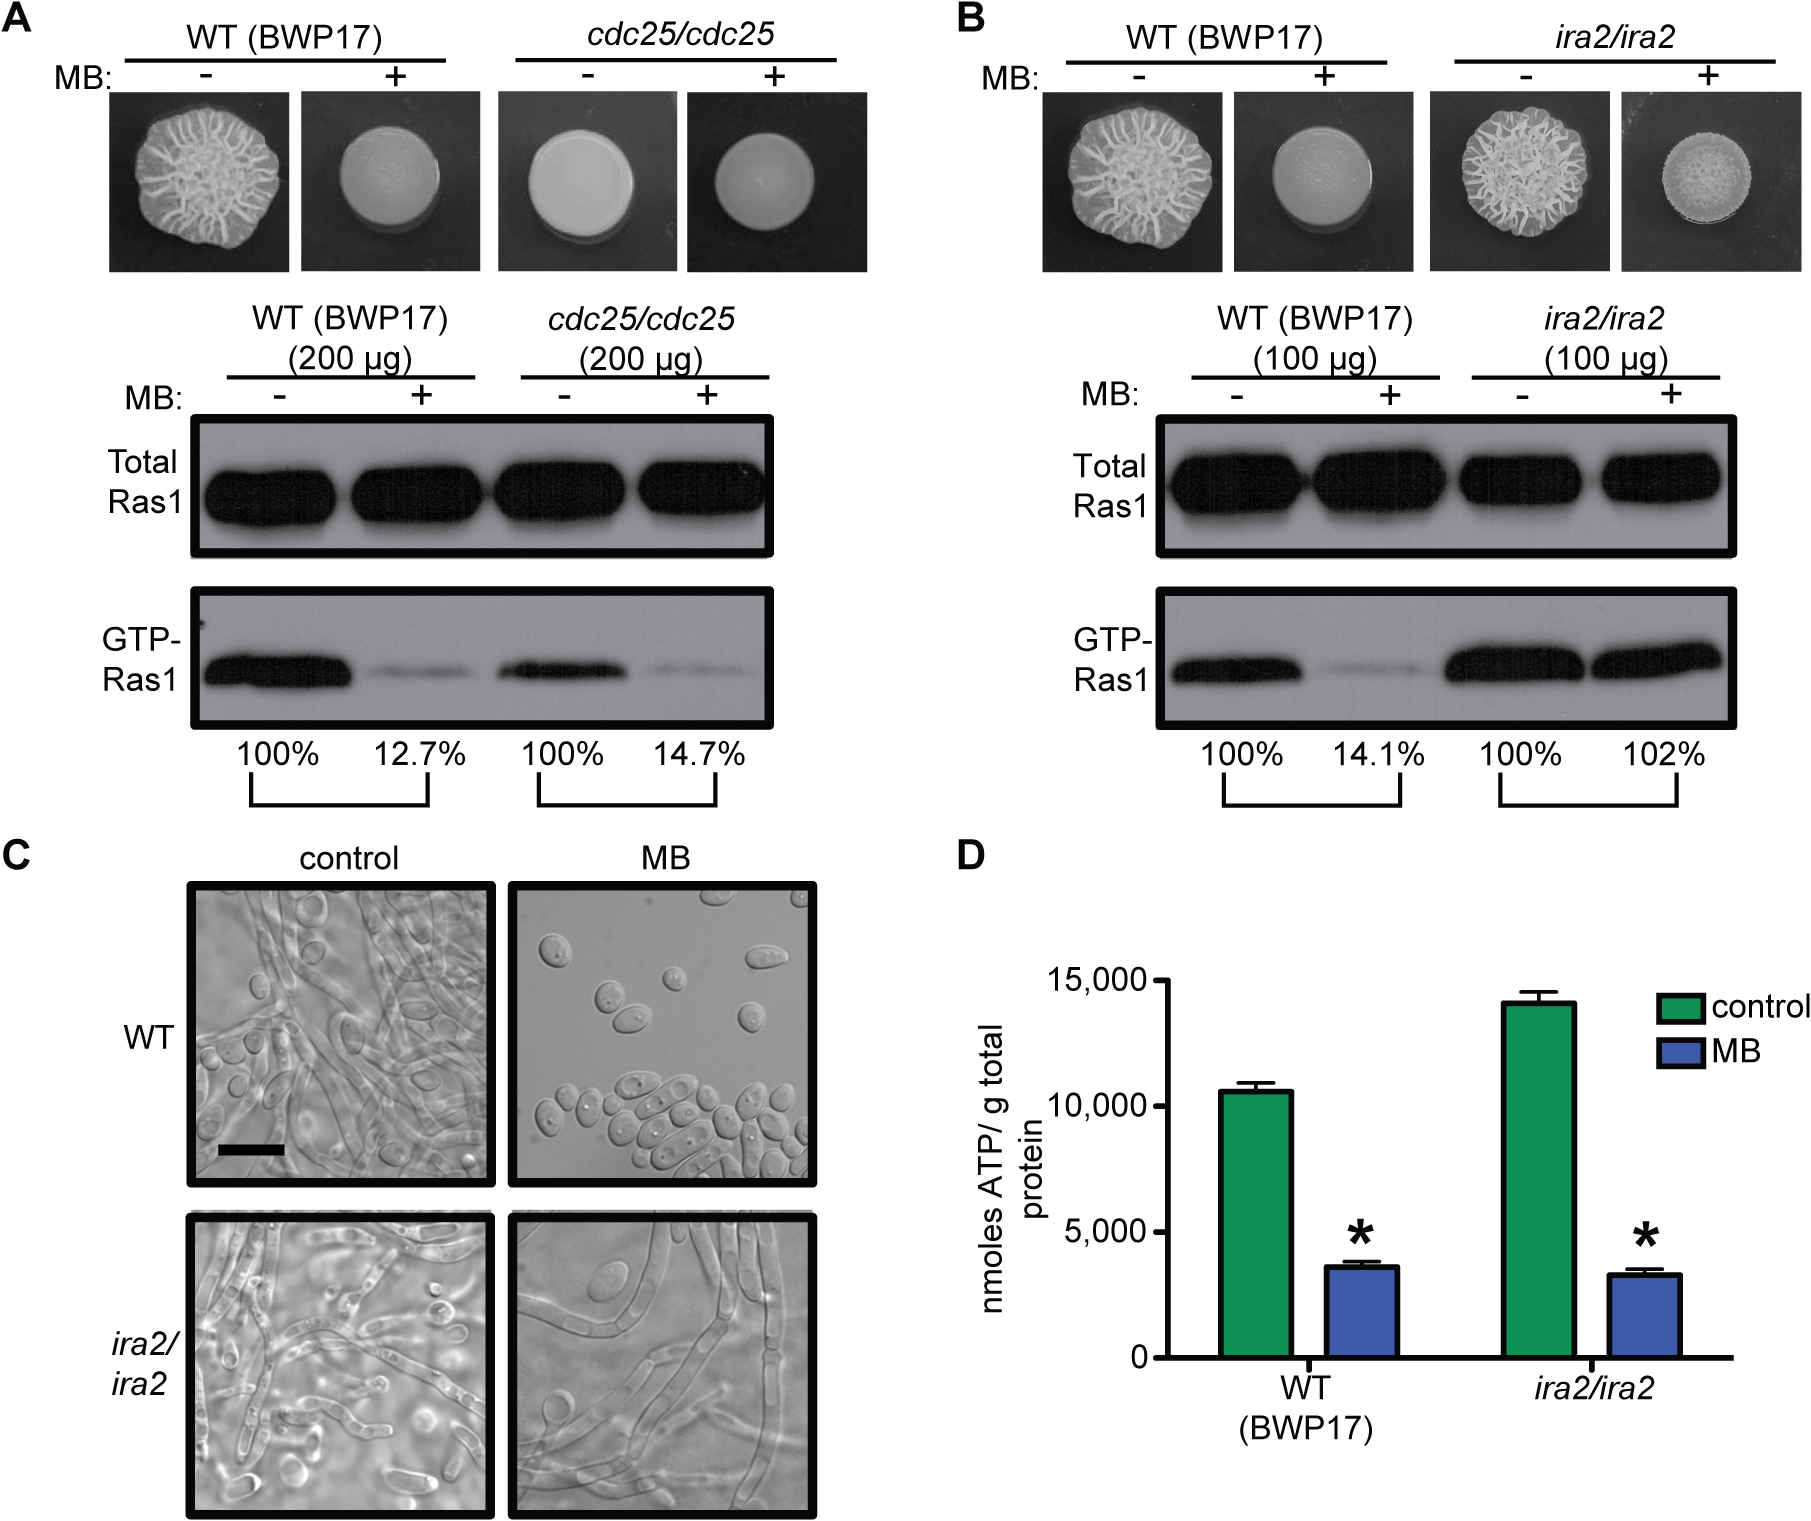 GTP-Ras1 decrease by MB is independent of the GEF Cdc25, but depends on the GAP Ira2.